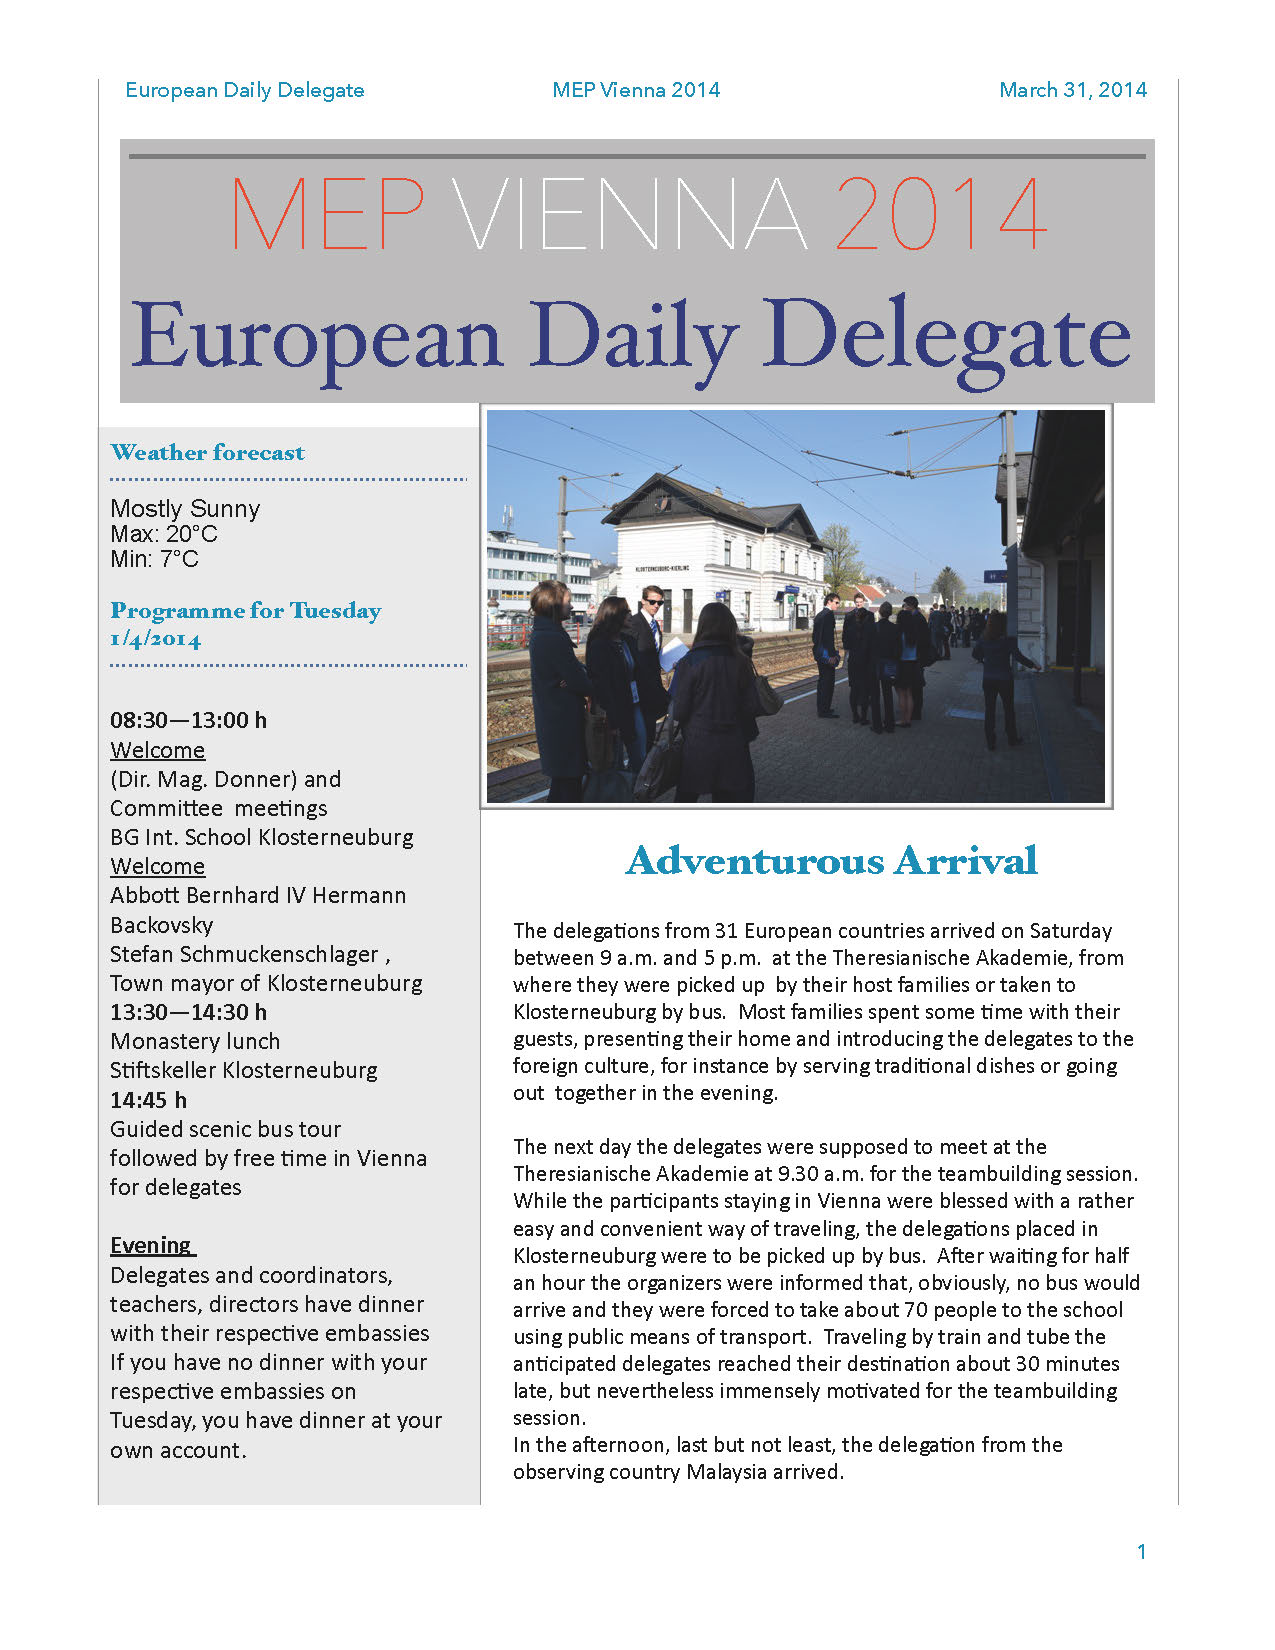 The European Daily Delegate (Issue 1)